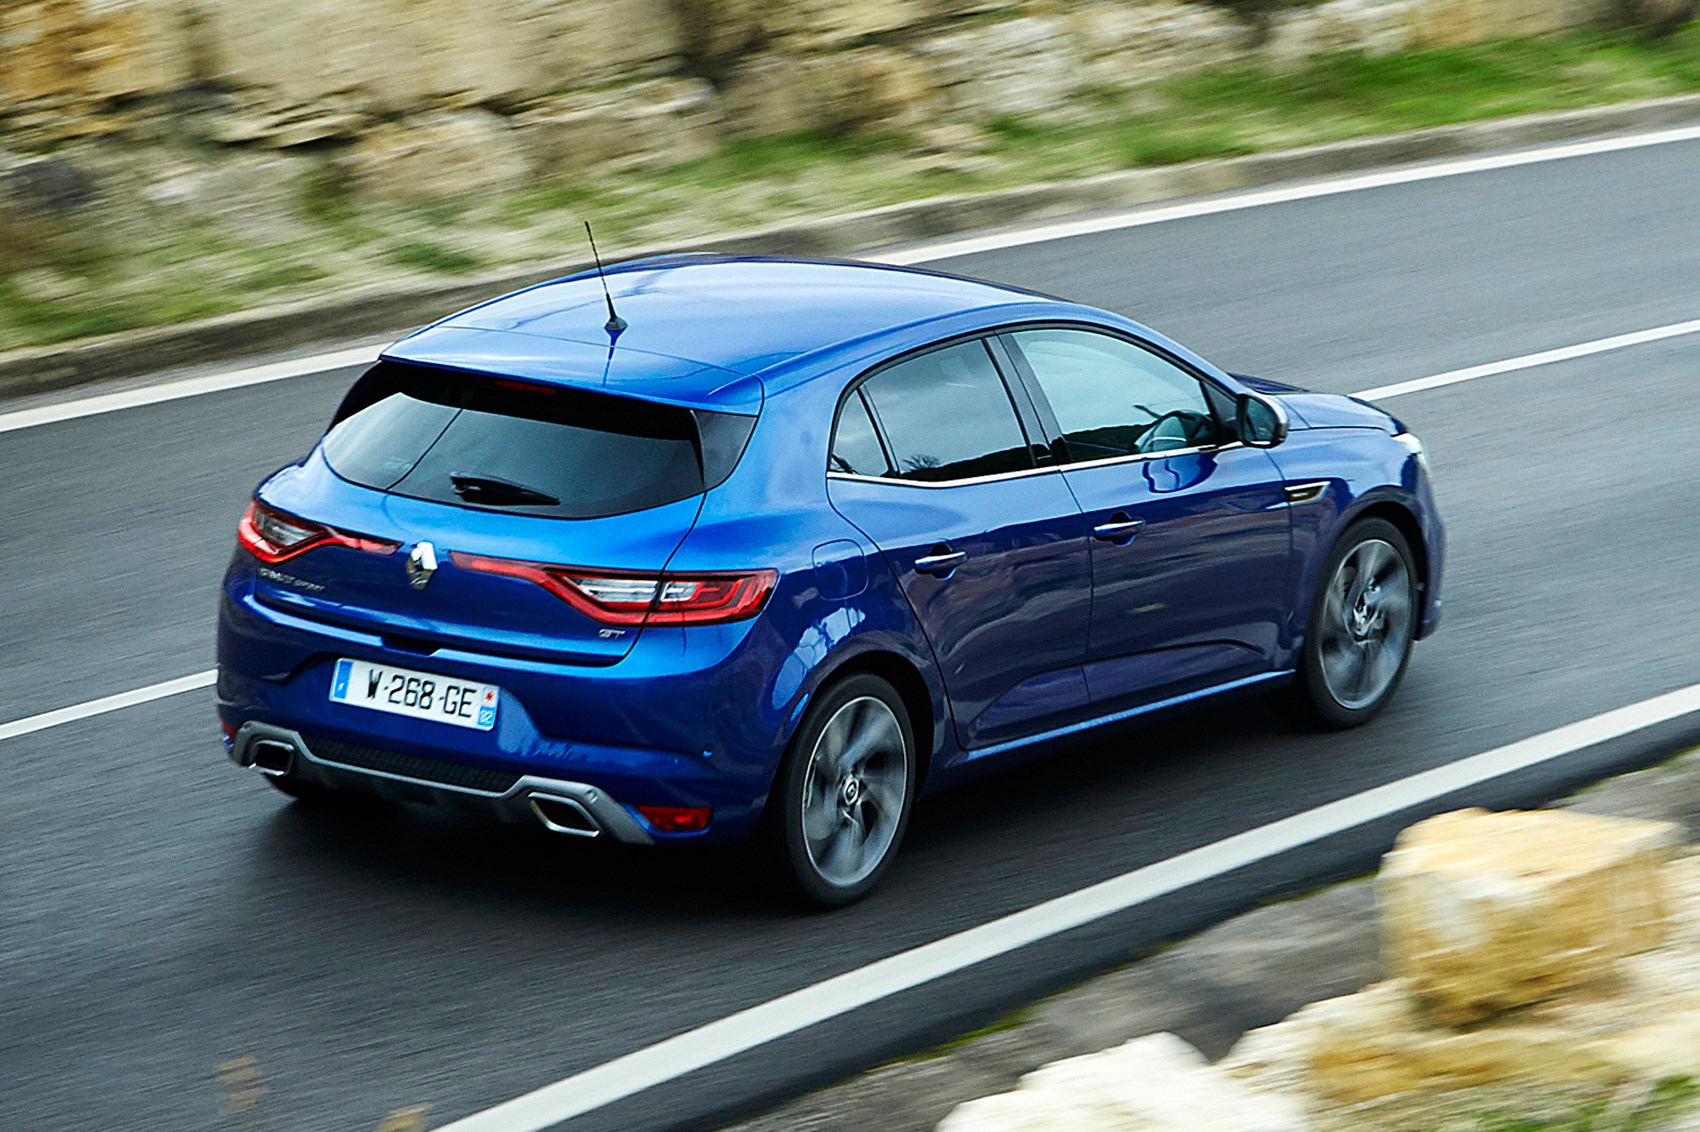 renault megane uk prices and specs announced range kicks. Black Bedroom Furniture Sets. Home Design Ideas